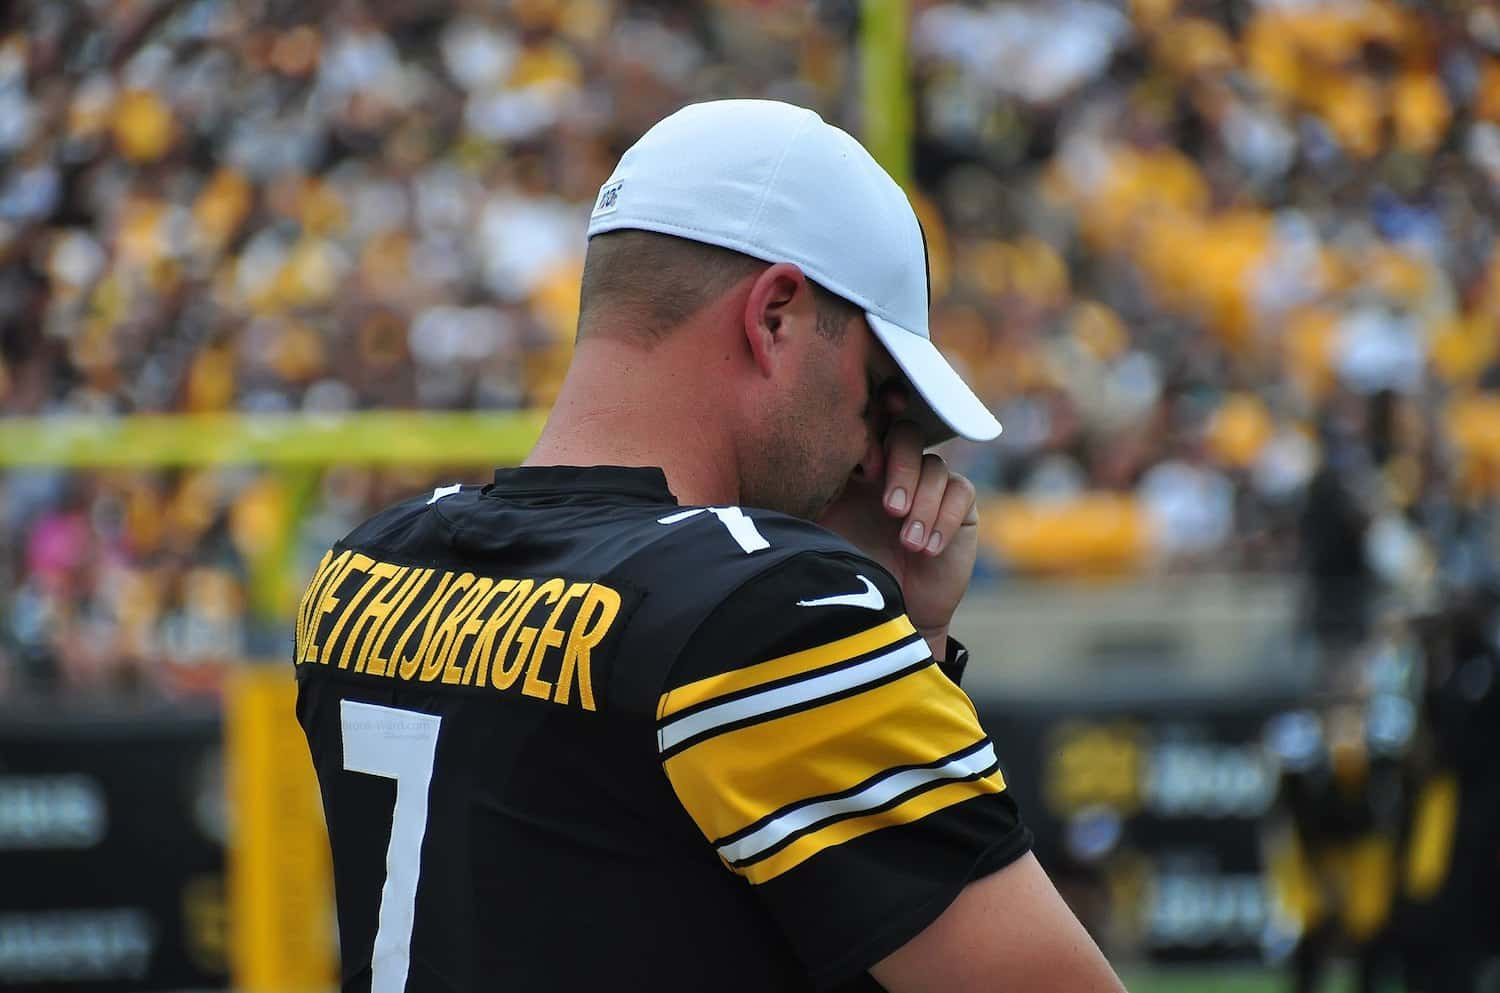 Pittsburgh Steelers Quarterback Ben Roethlisberger. Photo Credit: Brook Ward | Under Creative Commons License